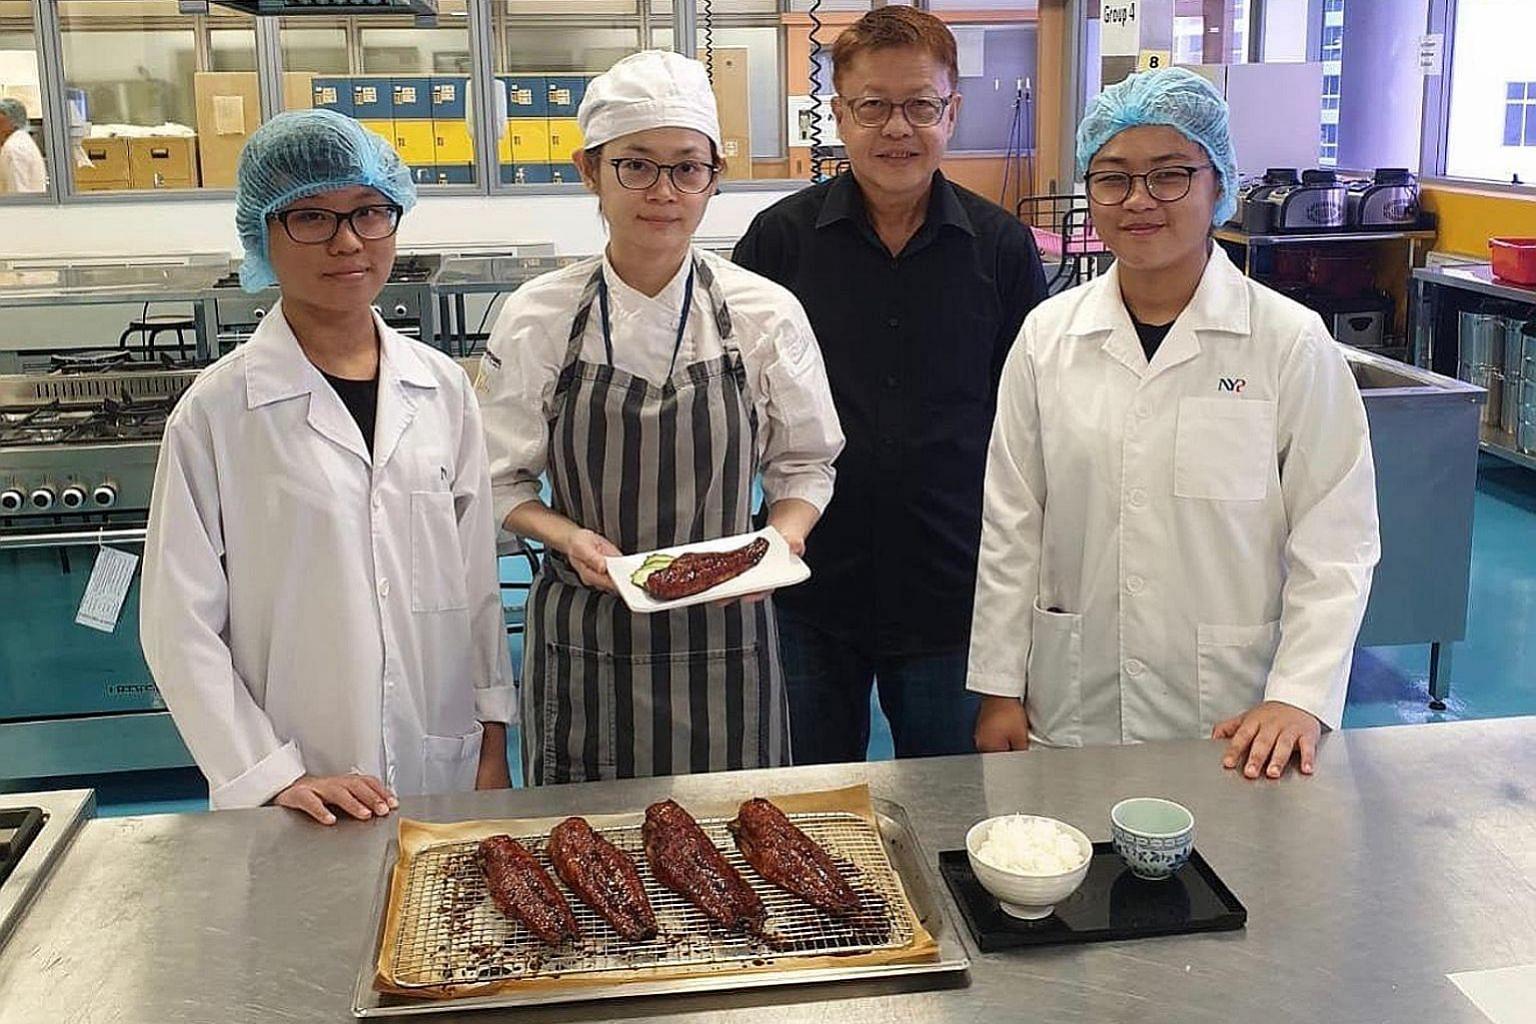 The team from Nanyang Polytechnic and Opal Resources with their version of unagi fillets, made from catfish. The catfish used for this product is a hybrid between the fast-growing African catfish and a strain of catfish that is tastier and often used